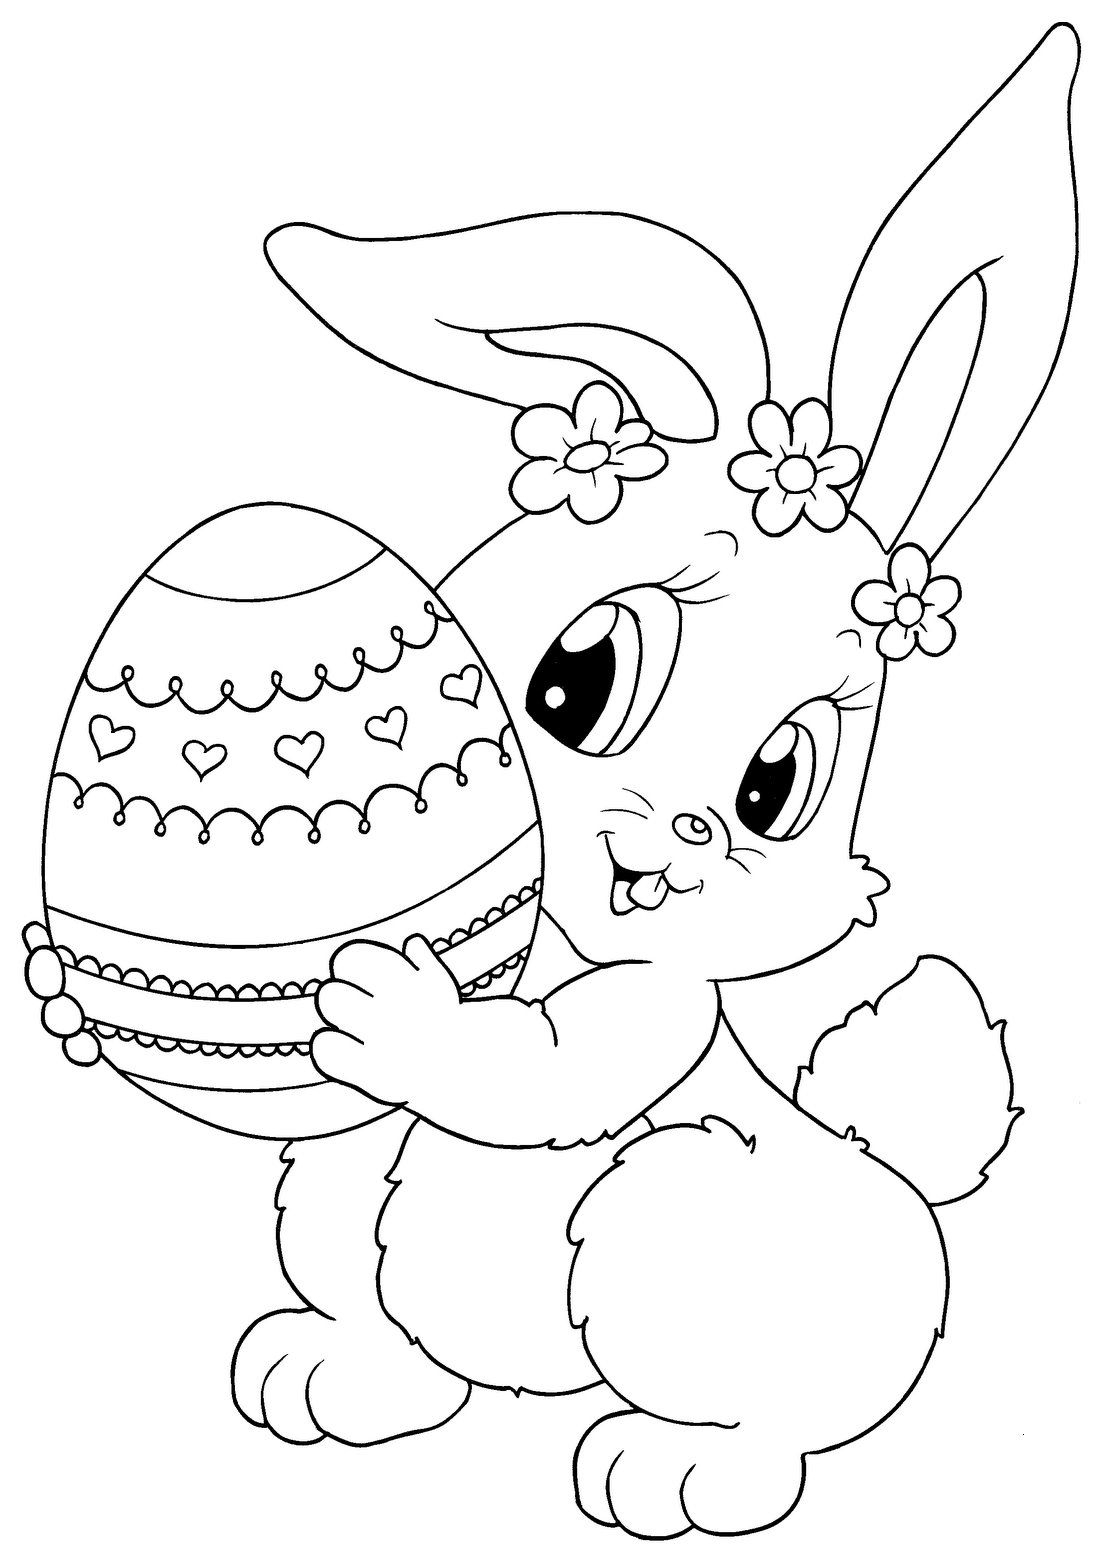 Top 15 Free Printable Easter Bunny Coloring Pages Online | Зентангл - Free Printable Easter Colouring Sheets